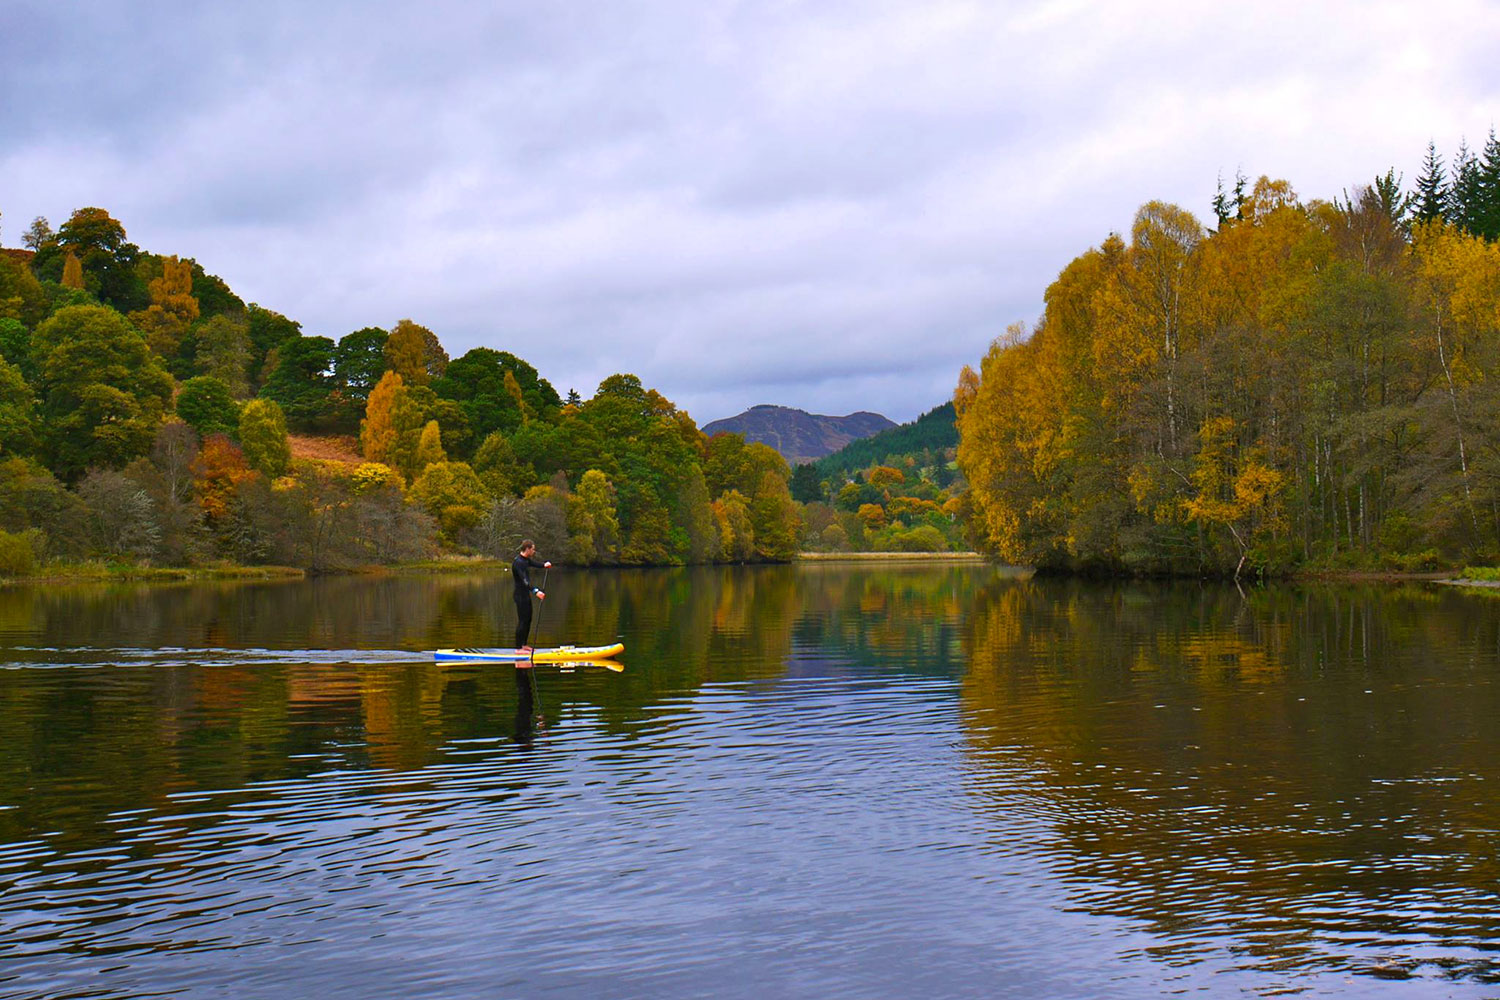 Standup paddleboarding on Loch Faskally